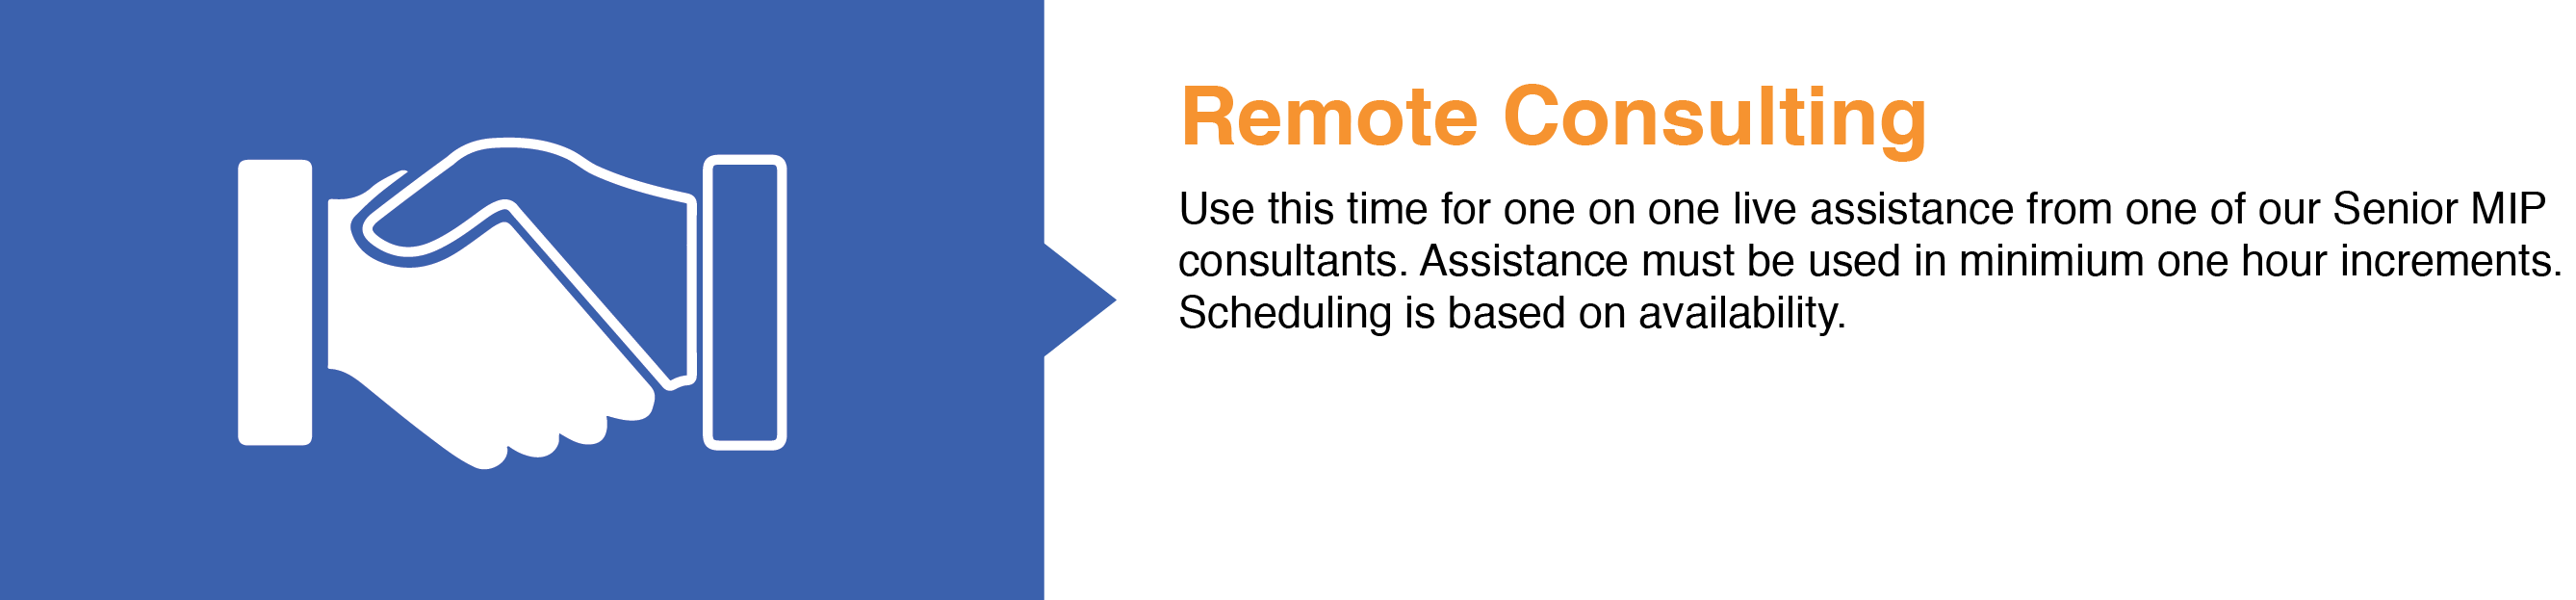 remoteconsulting